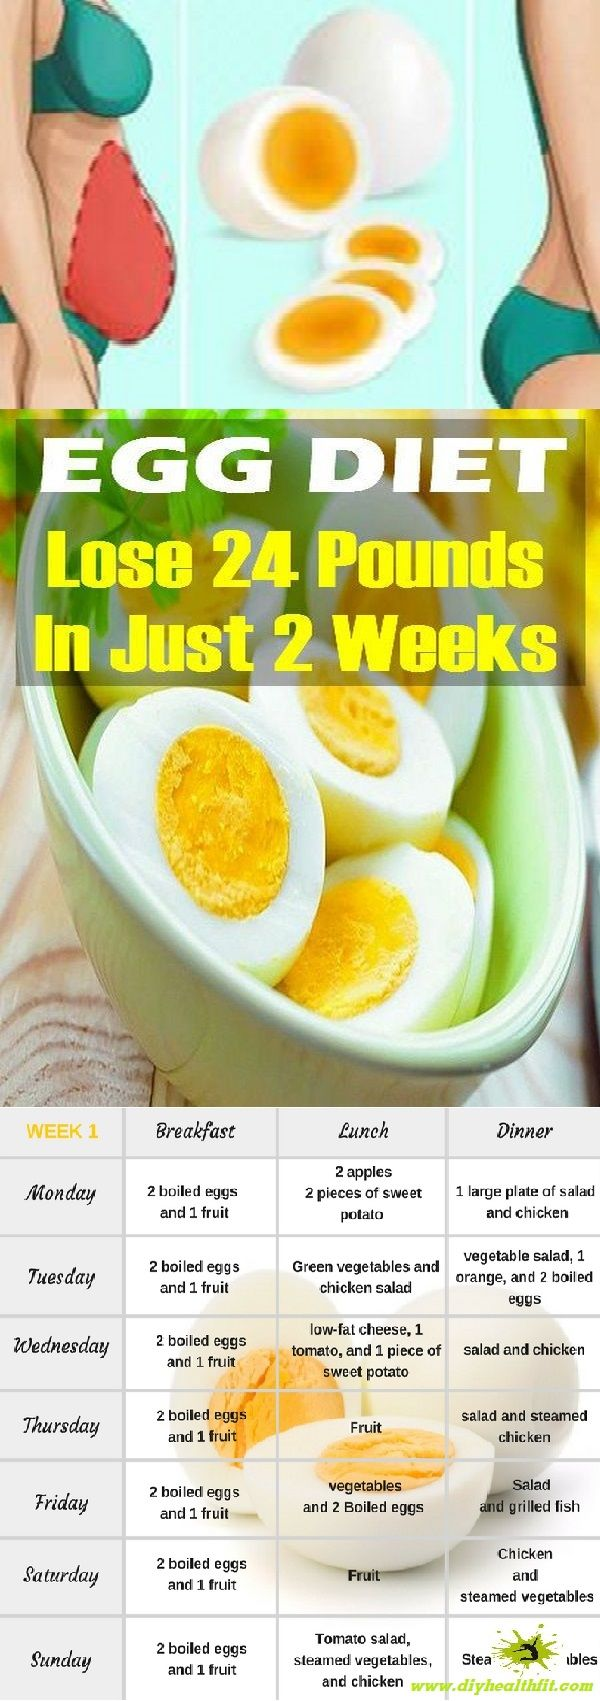 Absolutely, eggs represent a health food. They contain a lot of healthy nutrients and protein. Consuming eggs provides all the necessary healthy nutrients and vitamins for the human body. If you take up this weight lose diet and don't eat unhealthy food f http://healthyquickly.com/27-proven-tummy-tightening-foods/